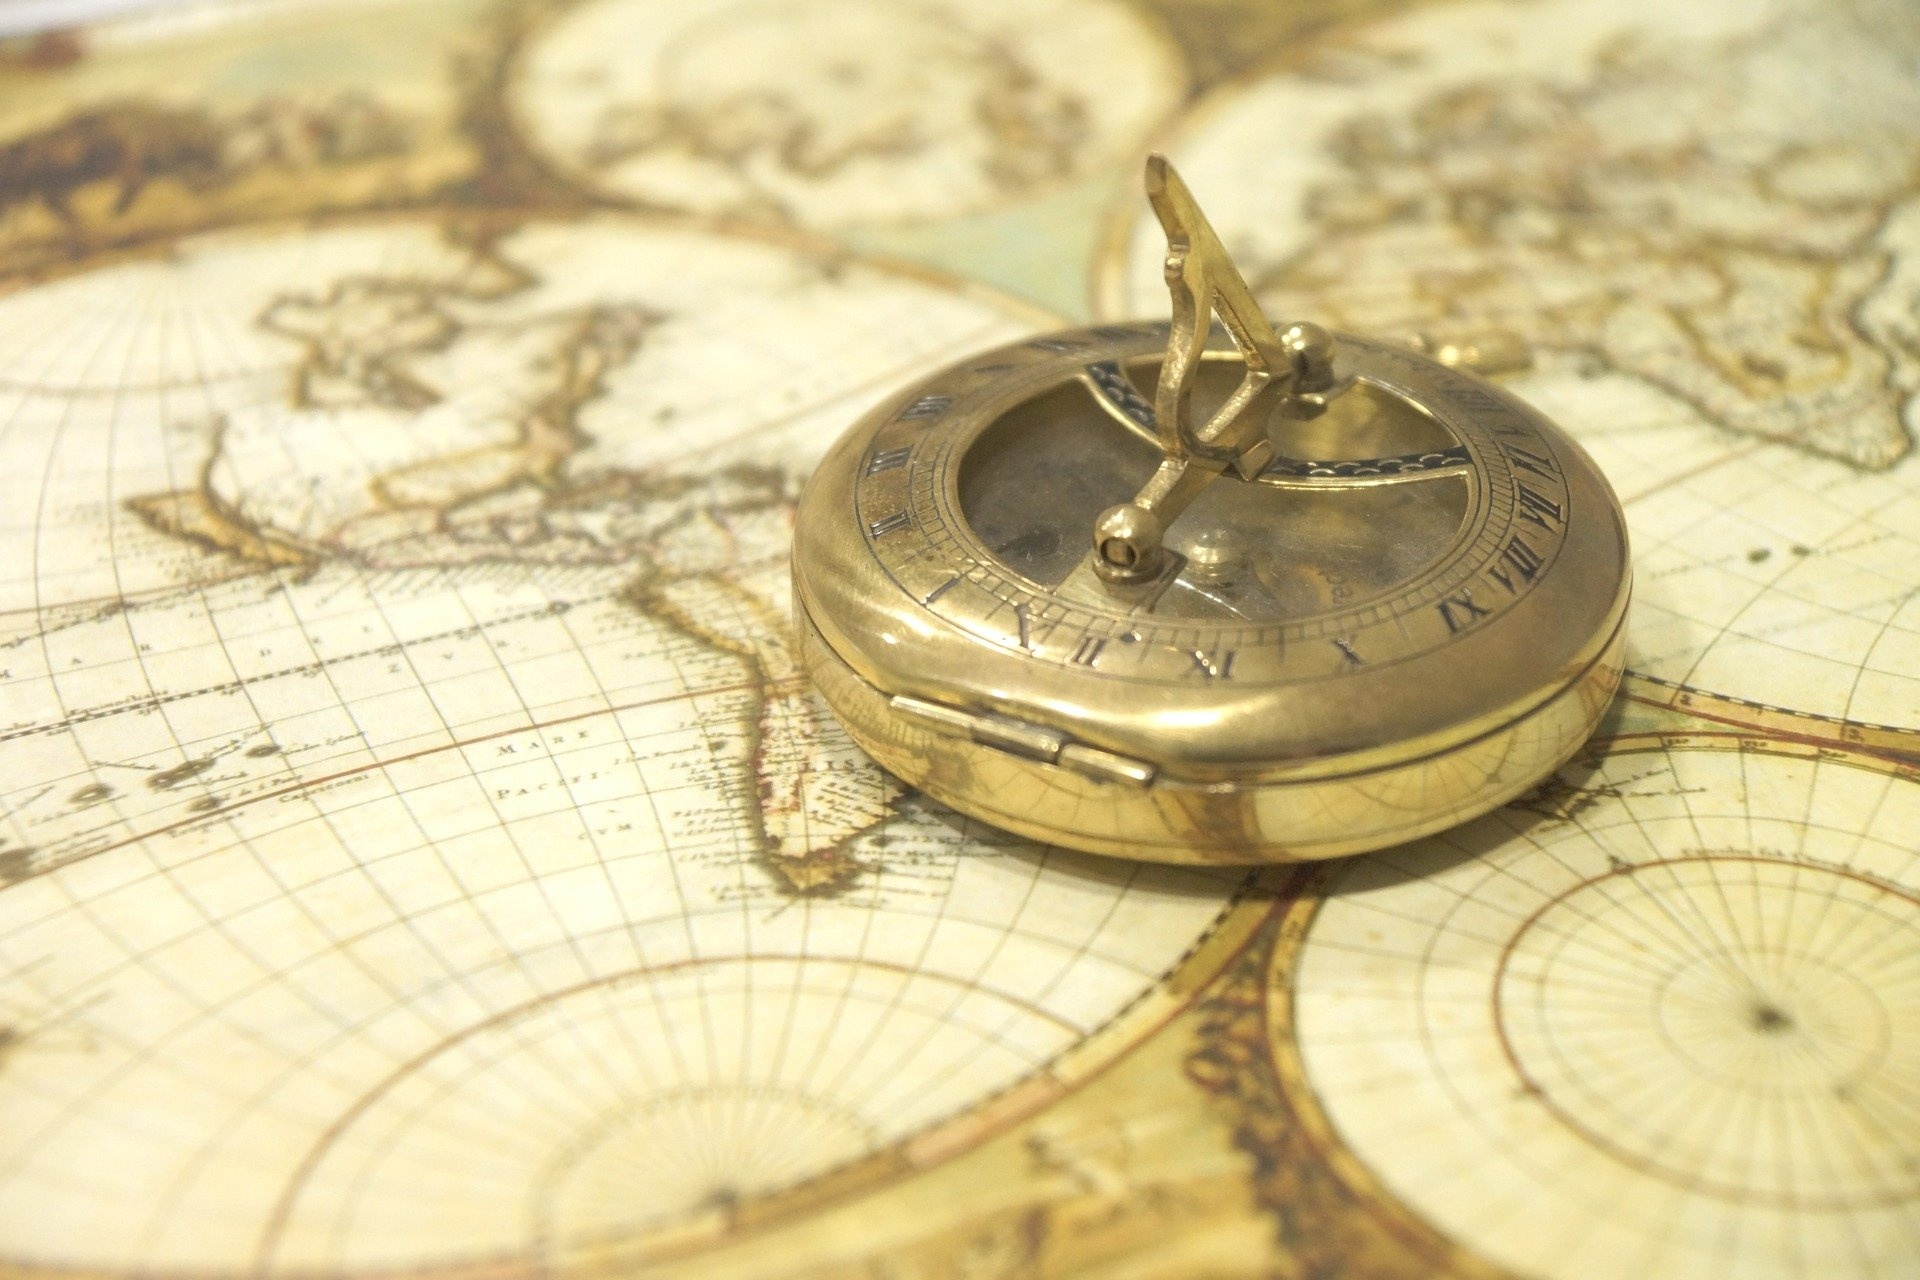 An old-fashioned compass and sun dial lies on top of an old map.